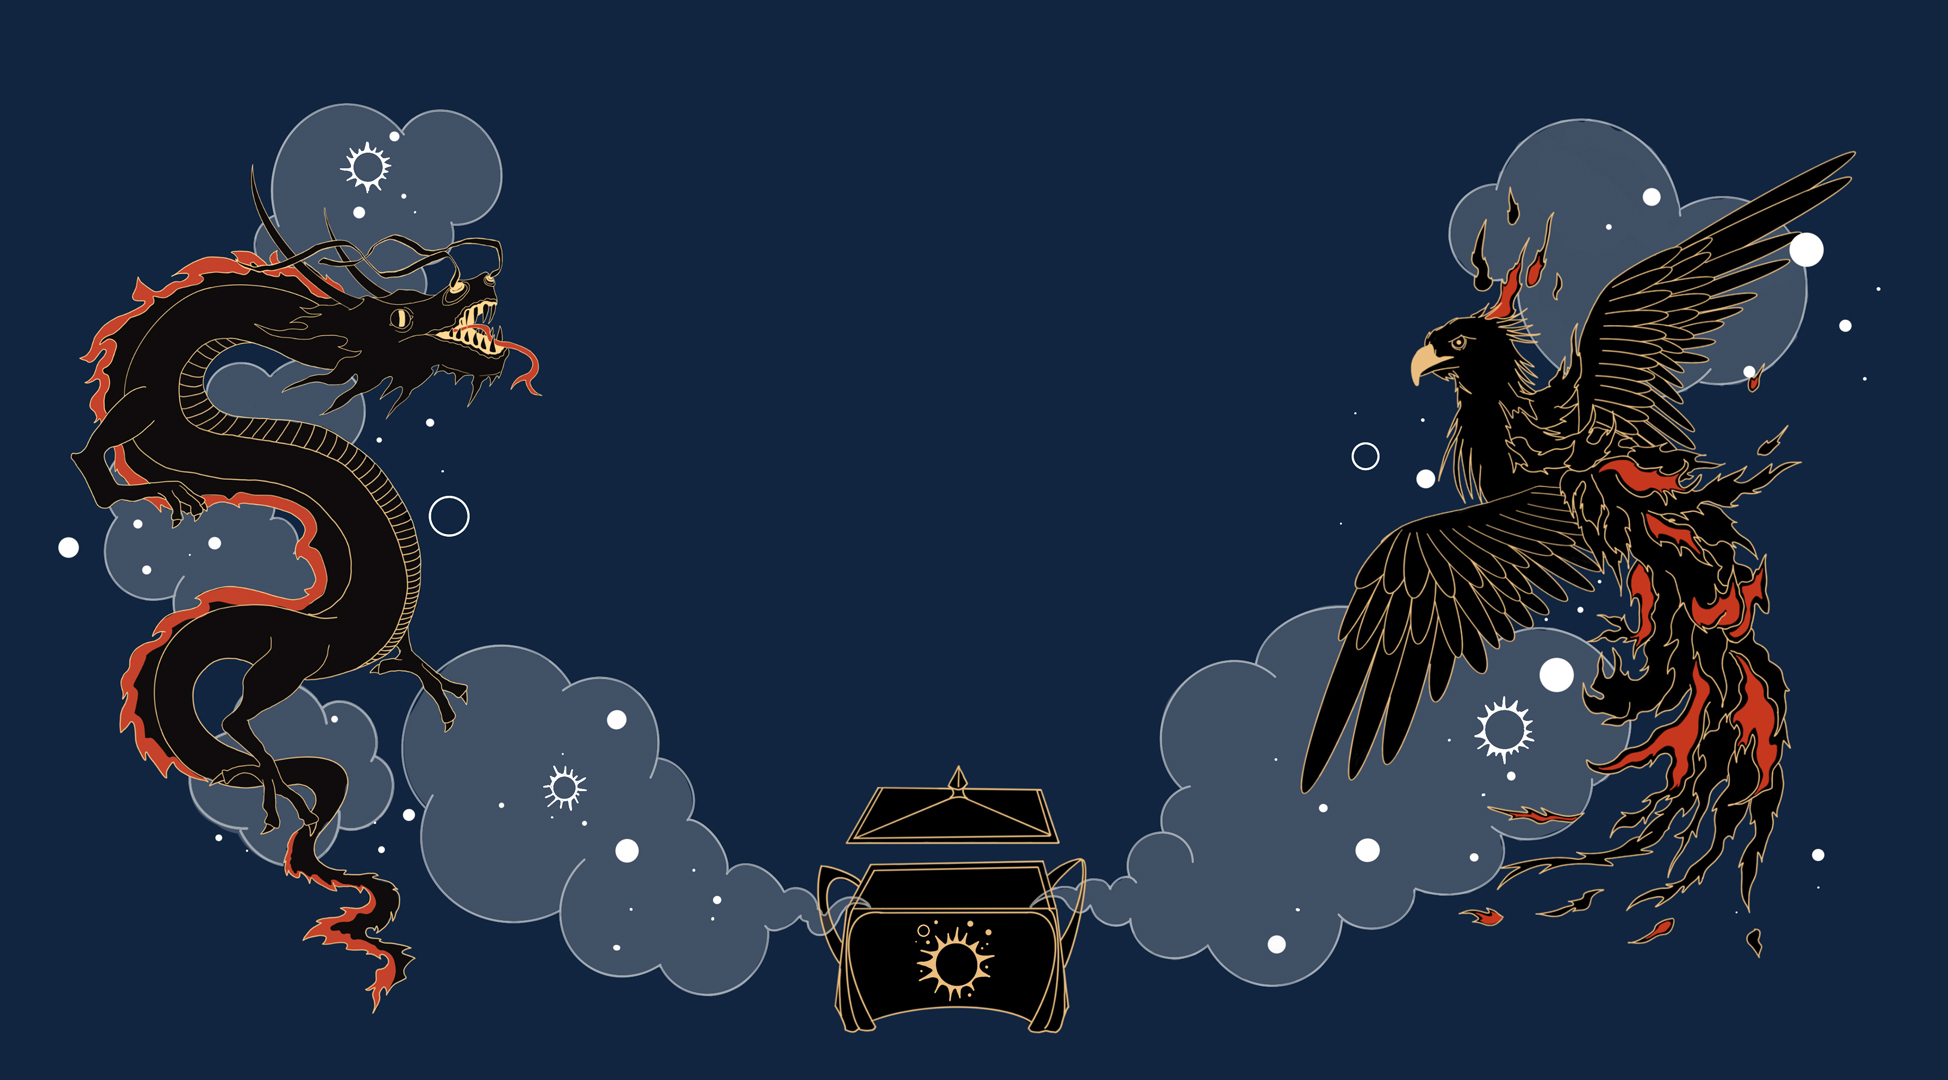 A digital illustration of a dragon and a phoenix facing each other, with a black box between them. Both creatures are black with red and gold details. Clouds and stars in pale blue and white are moving around them.